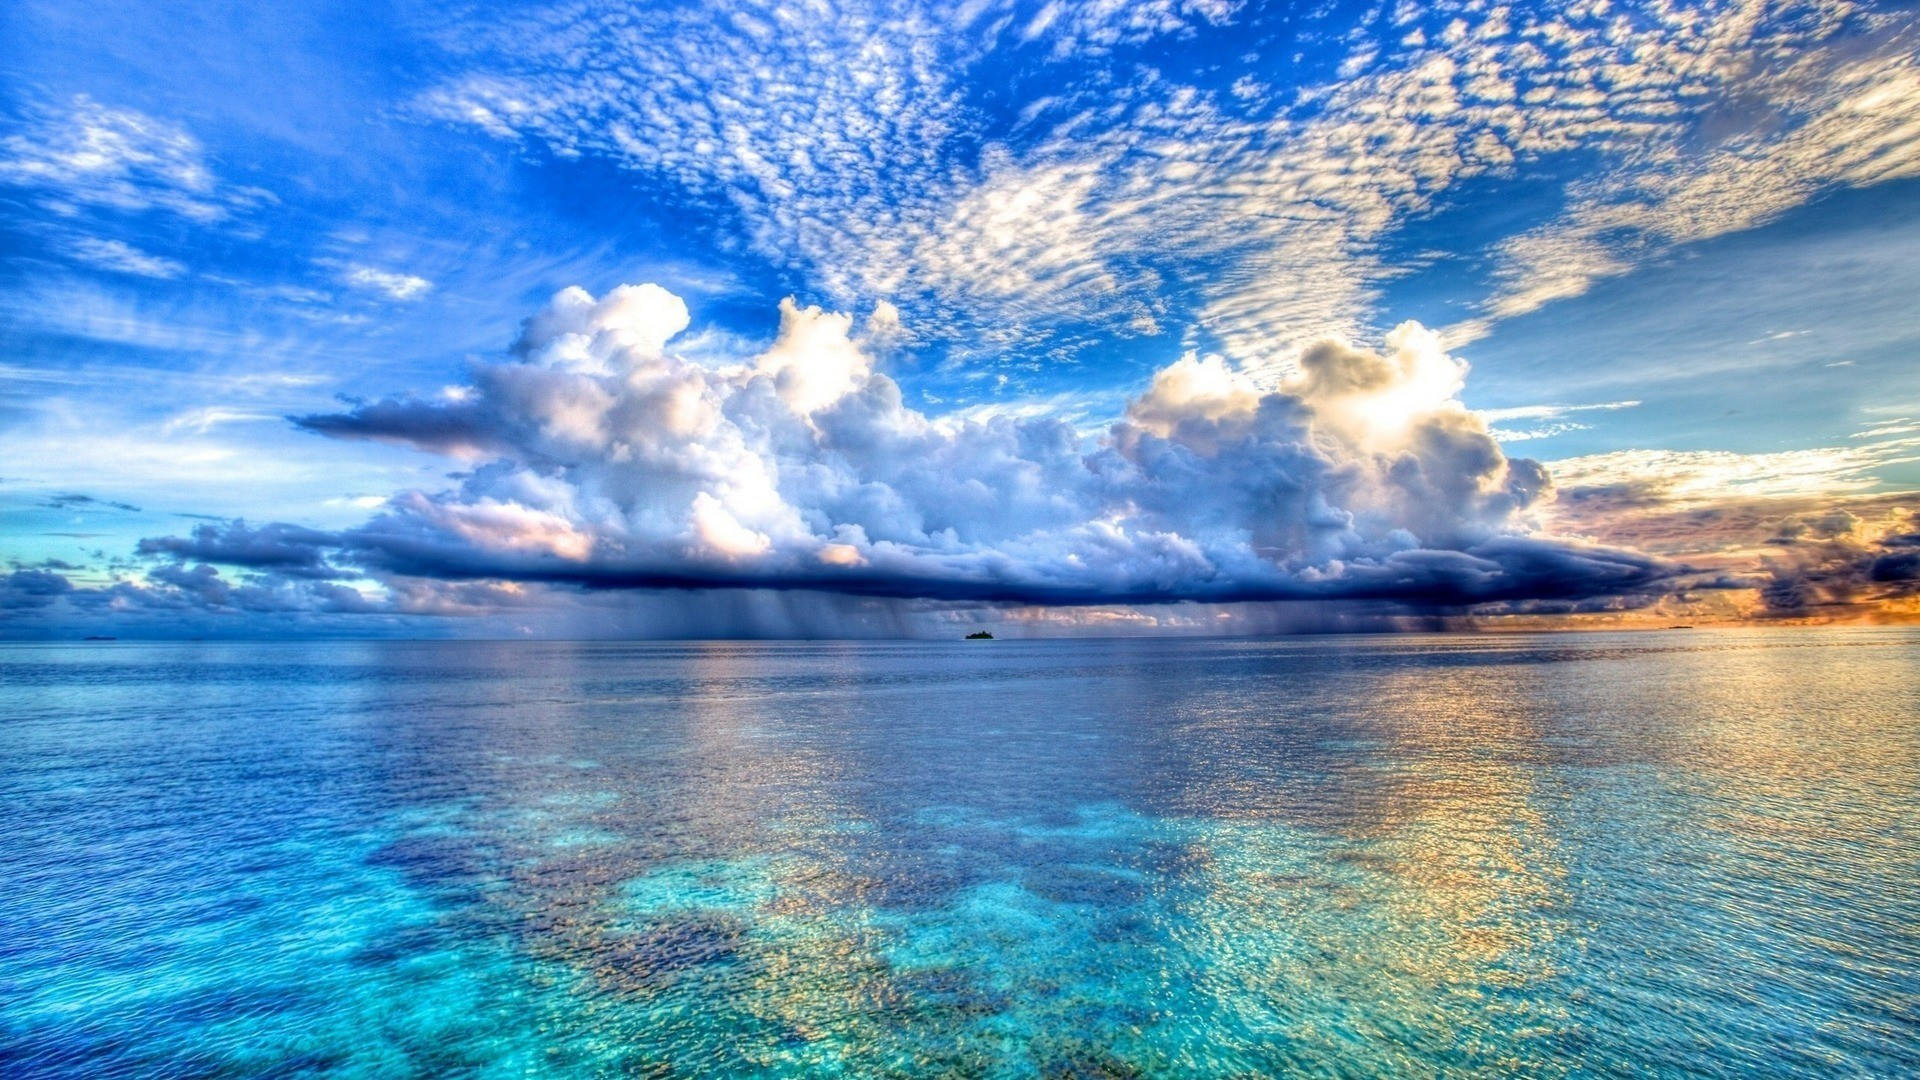 1920x1080 Ocean cloud Wallpaper